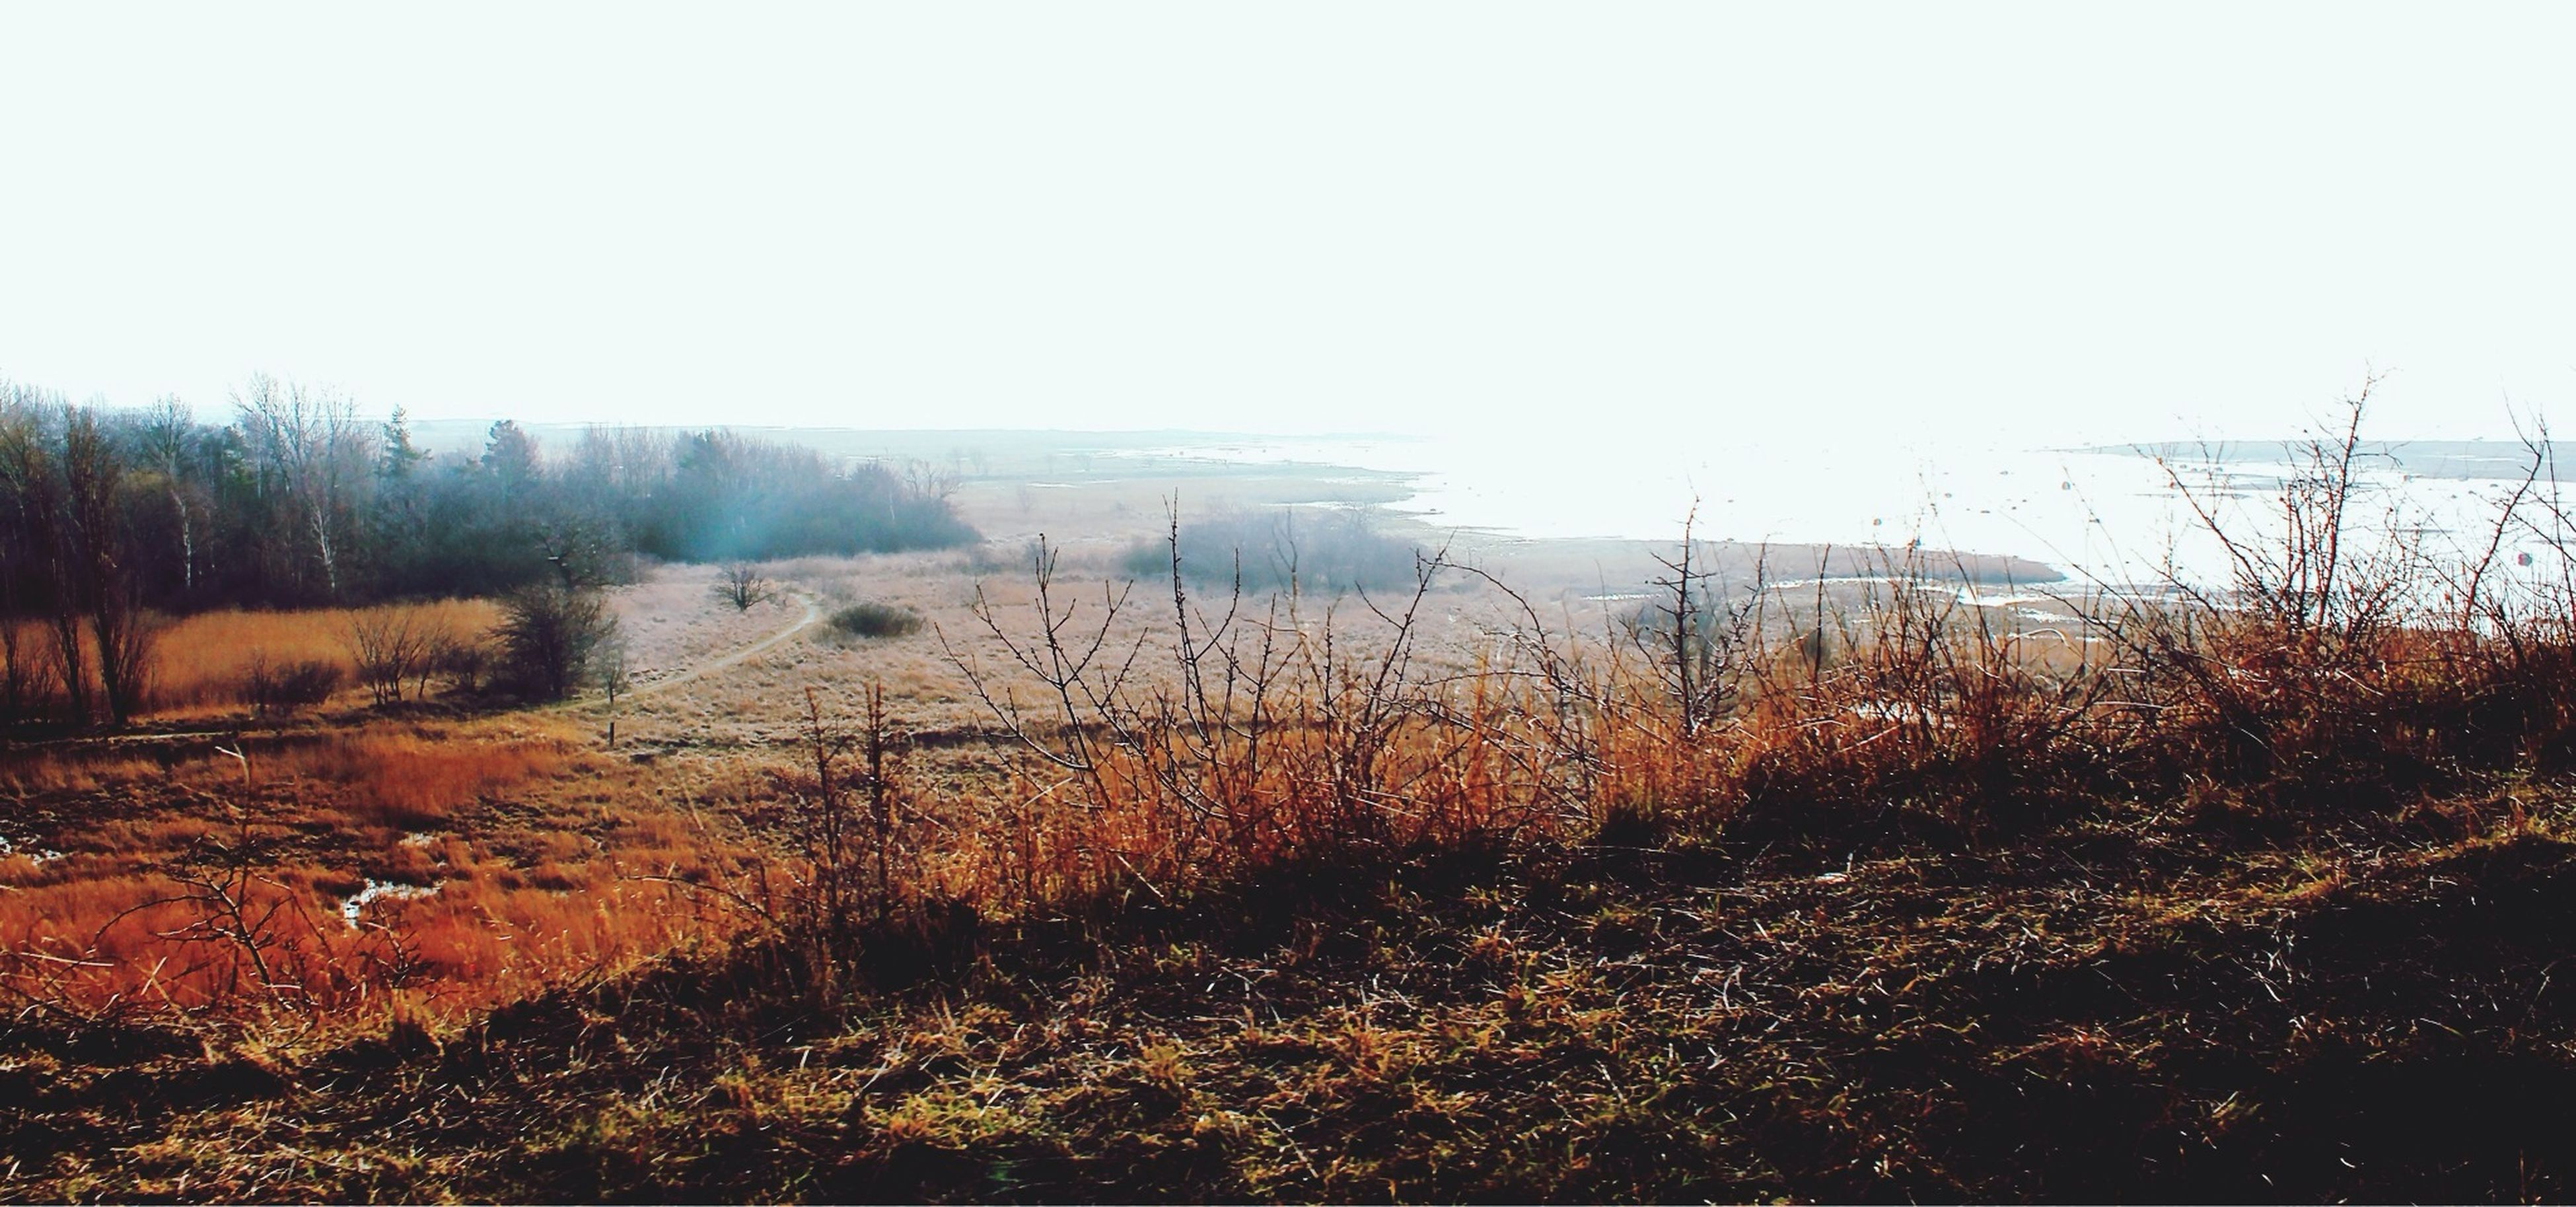 clear sky, tranquility, tranquil scene, landscape, copy space, plant, nature, beauty in nature, scenics, field, growth, foggy, non-urban scene, water, outdoors, sky, no people, dry, day